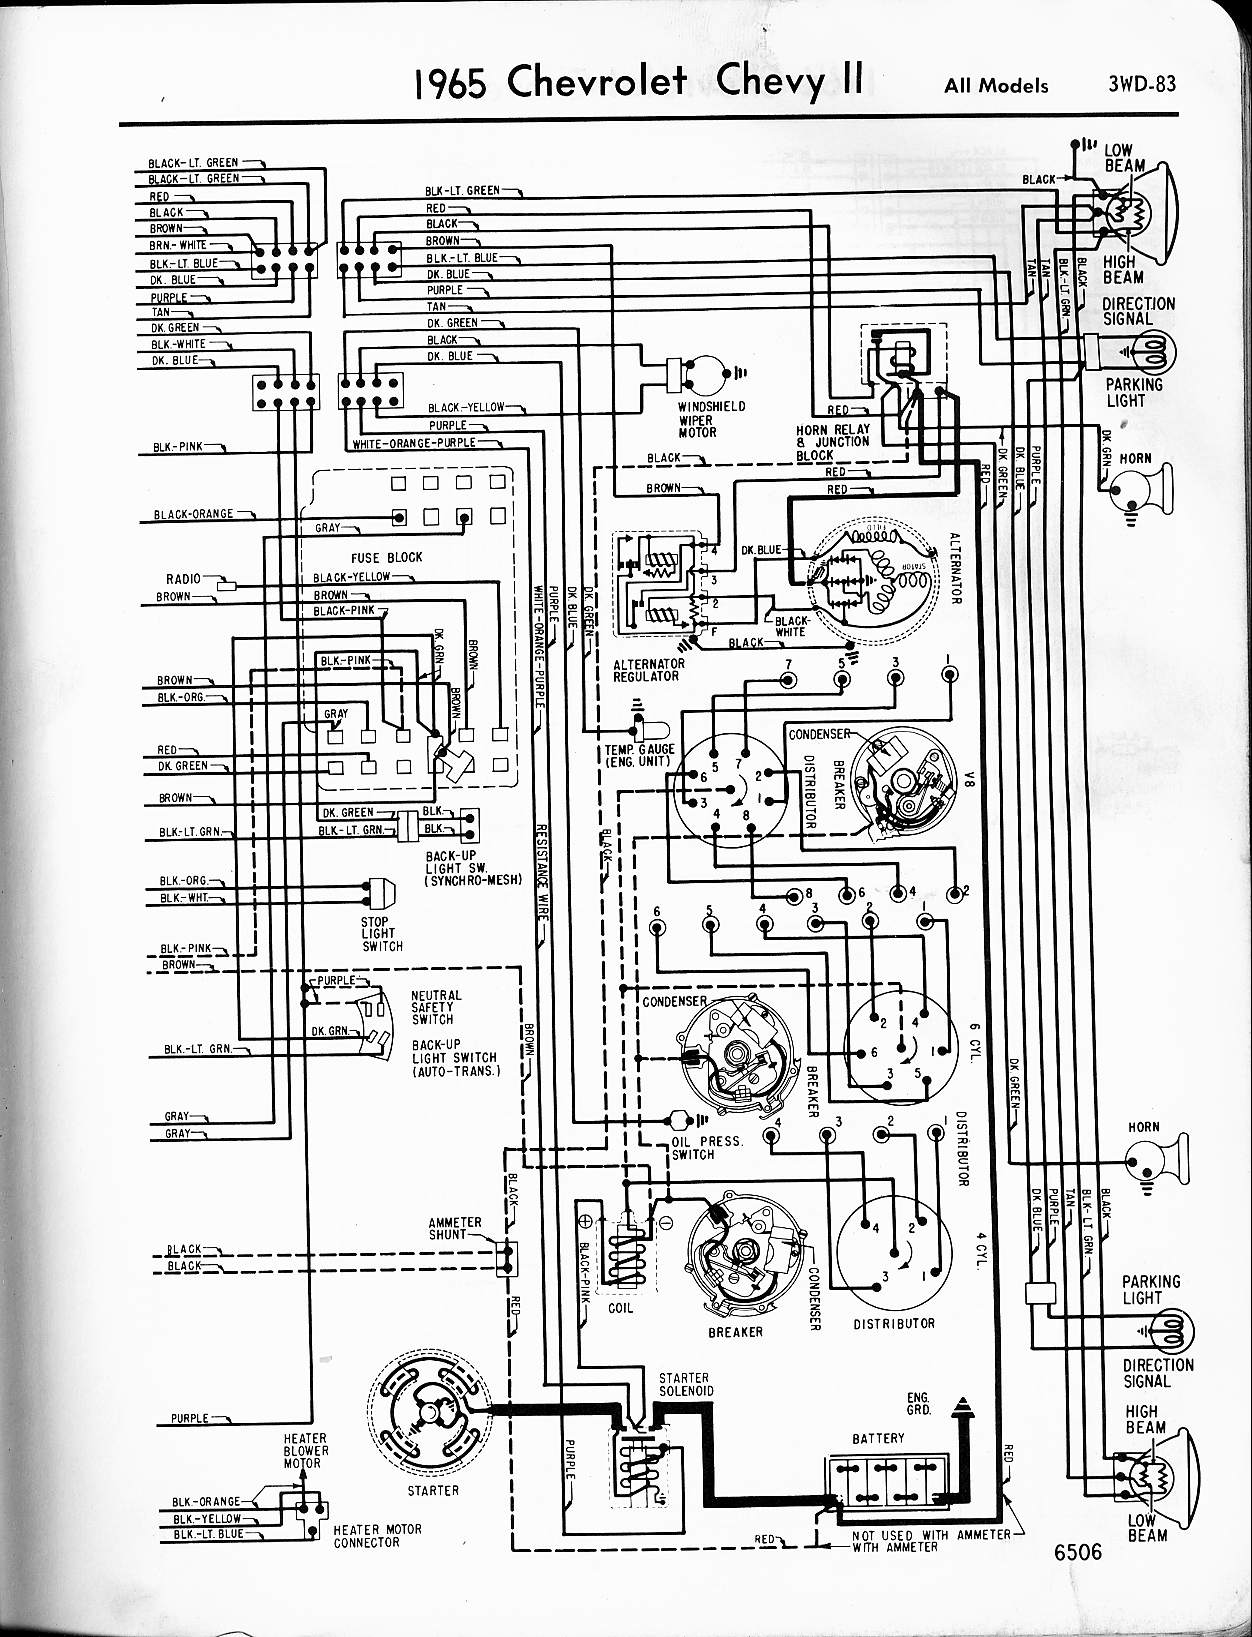 chevy diagrams rh wiring wizard com 68 Chevy Truck Wiring Diagram 1965 Chevy Truck Wiring Diagram